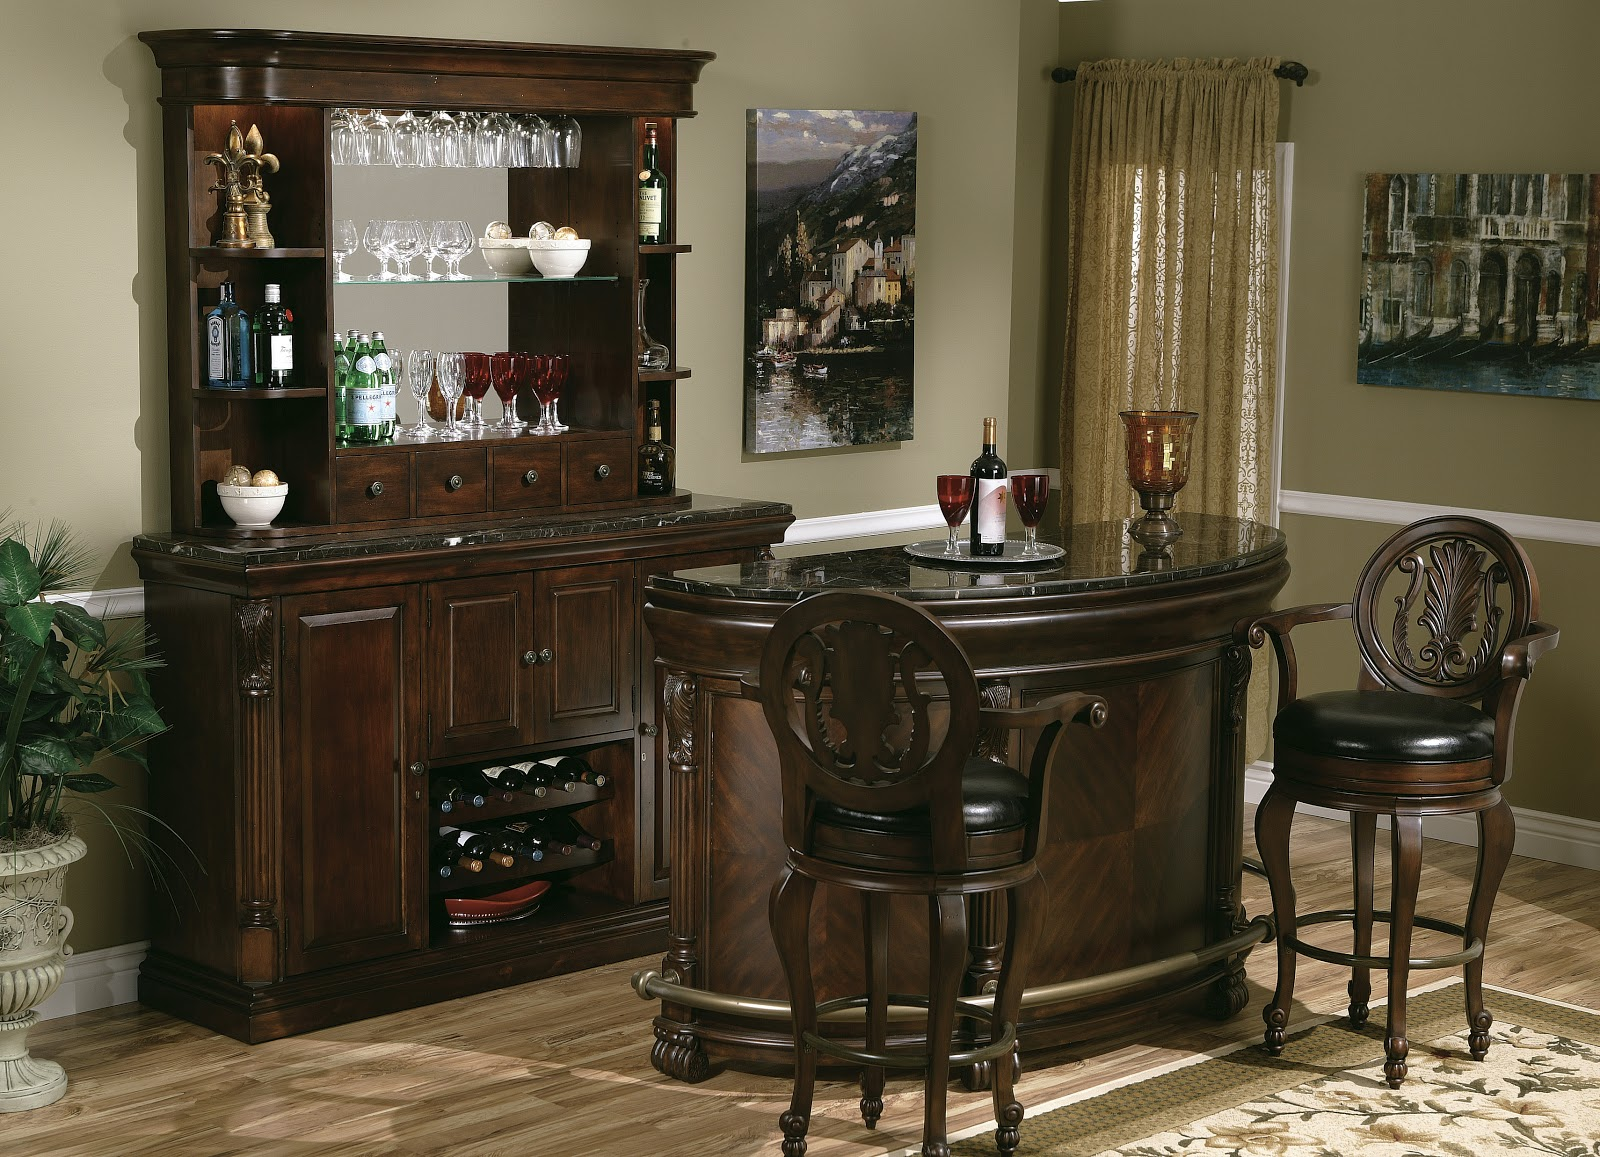 Expressions of time Home bar furniture with kegerator